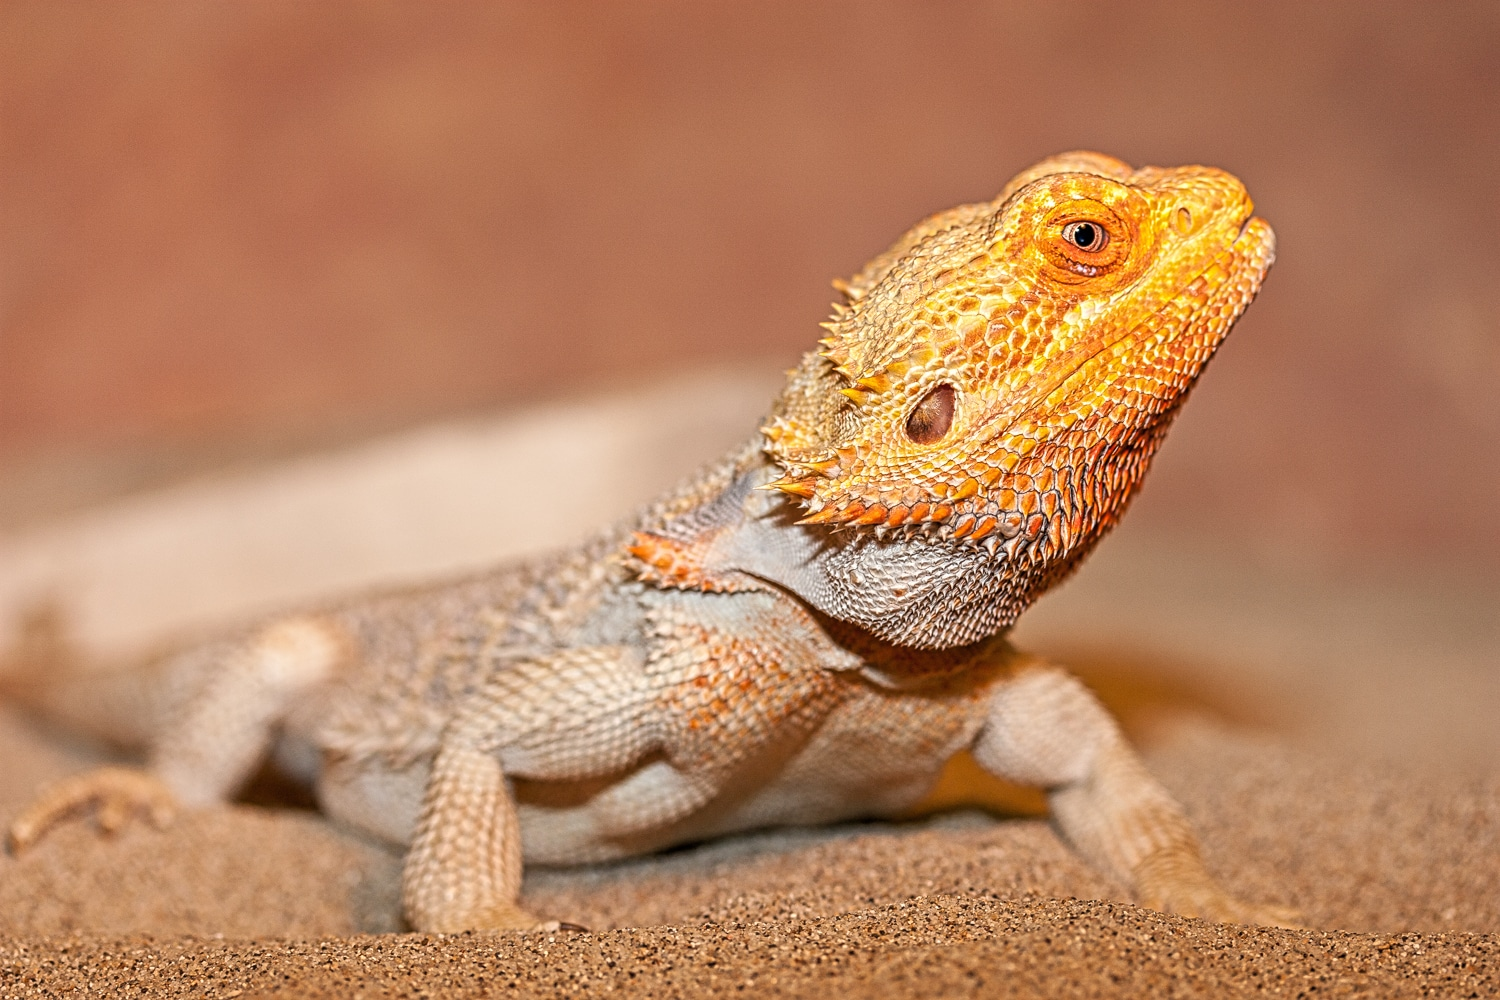 Lizard with Orange Head